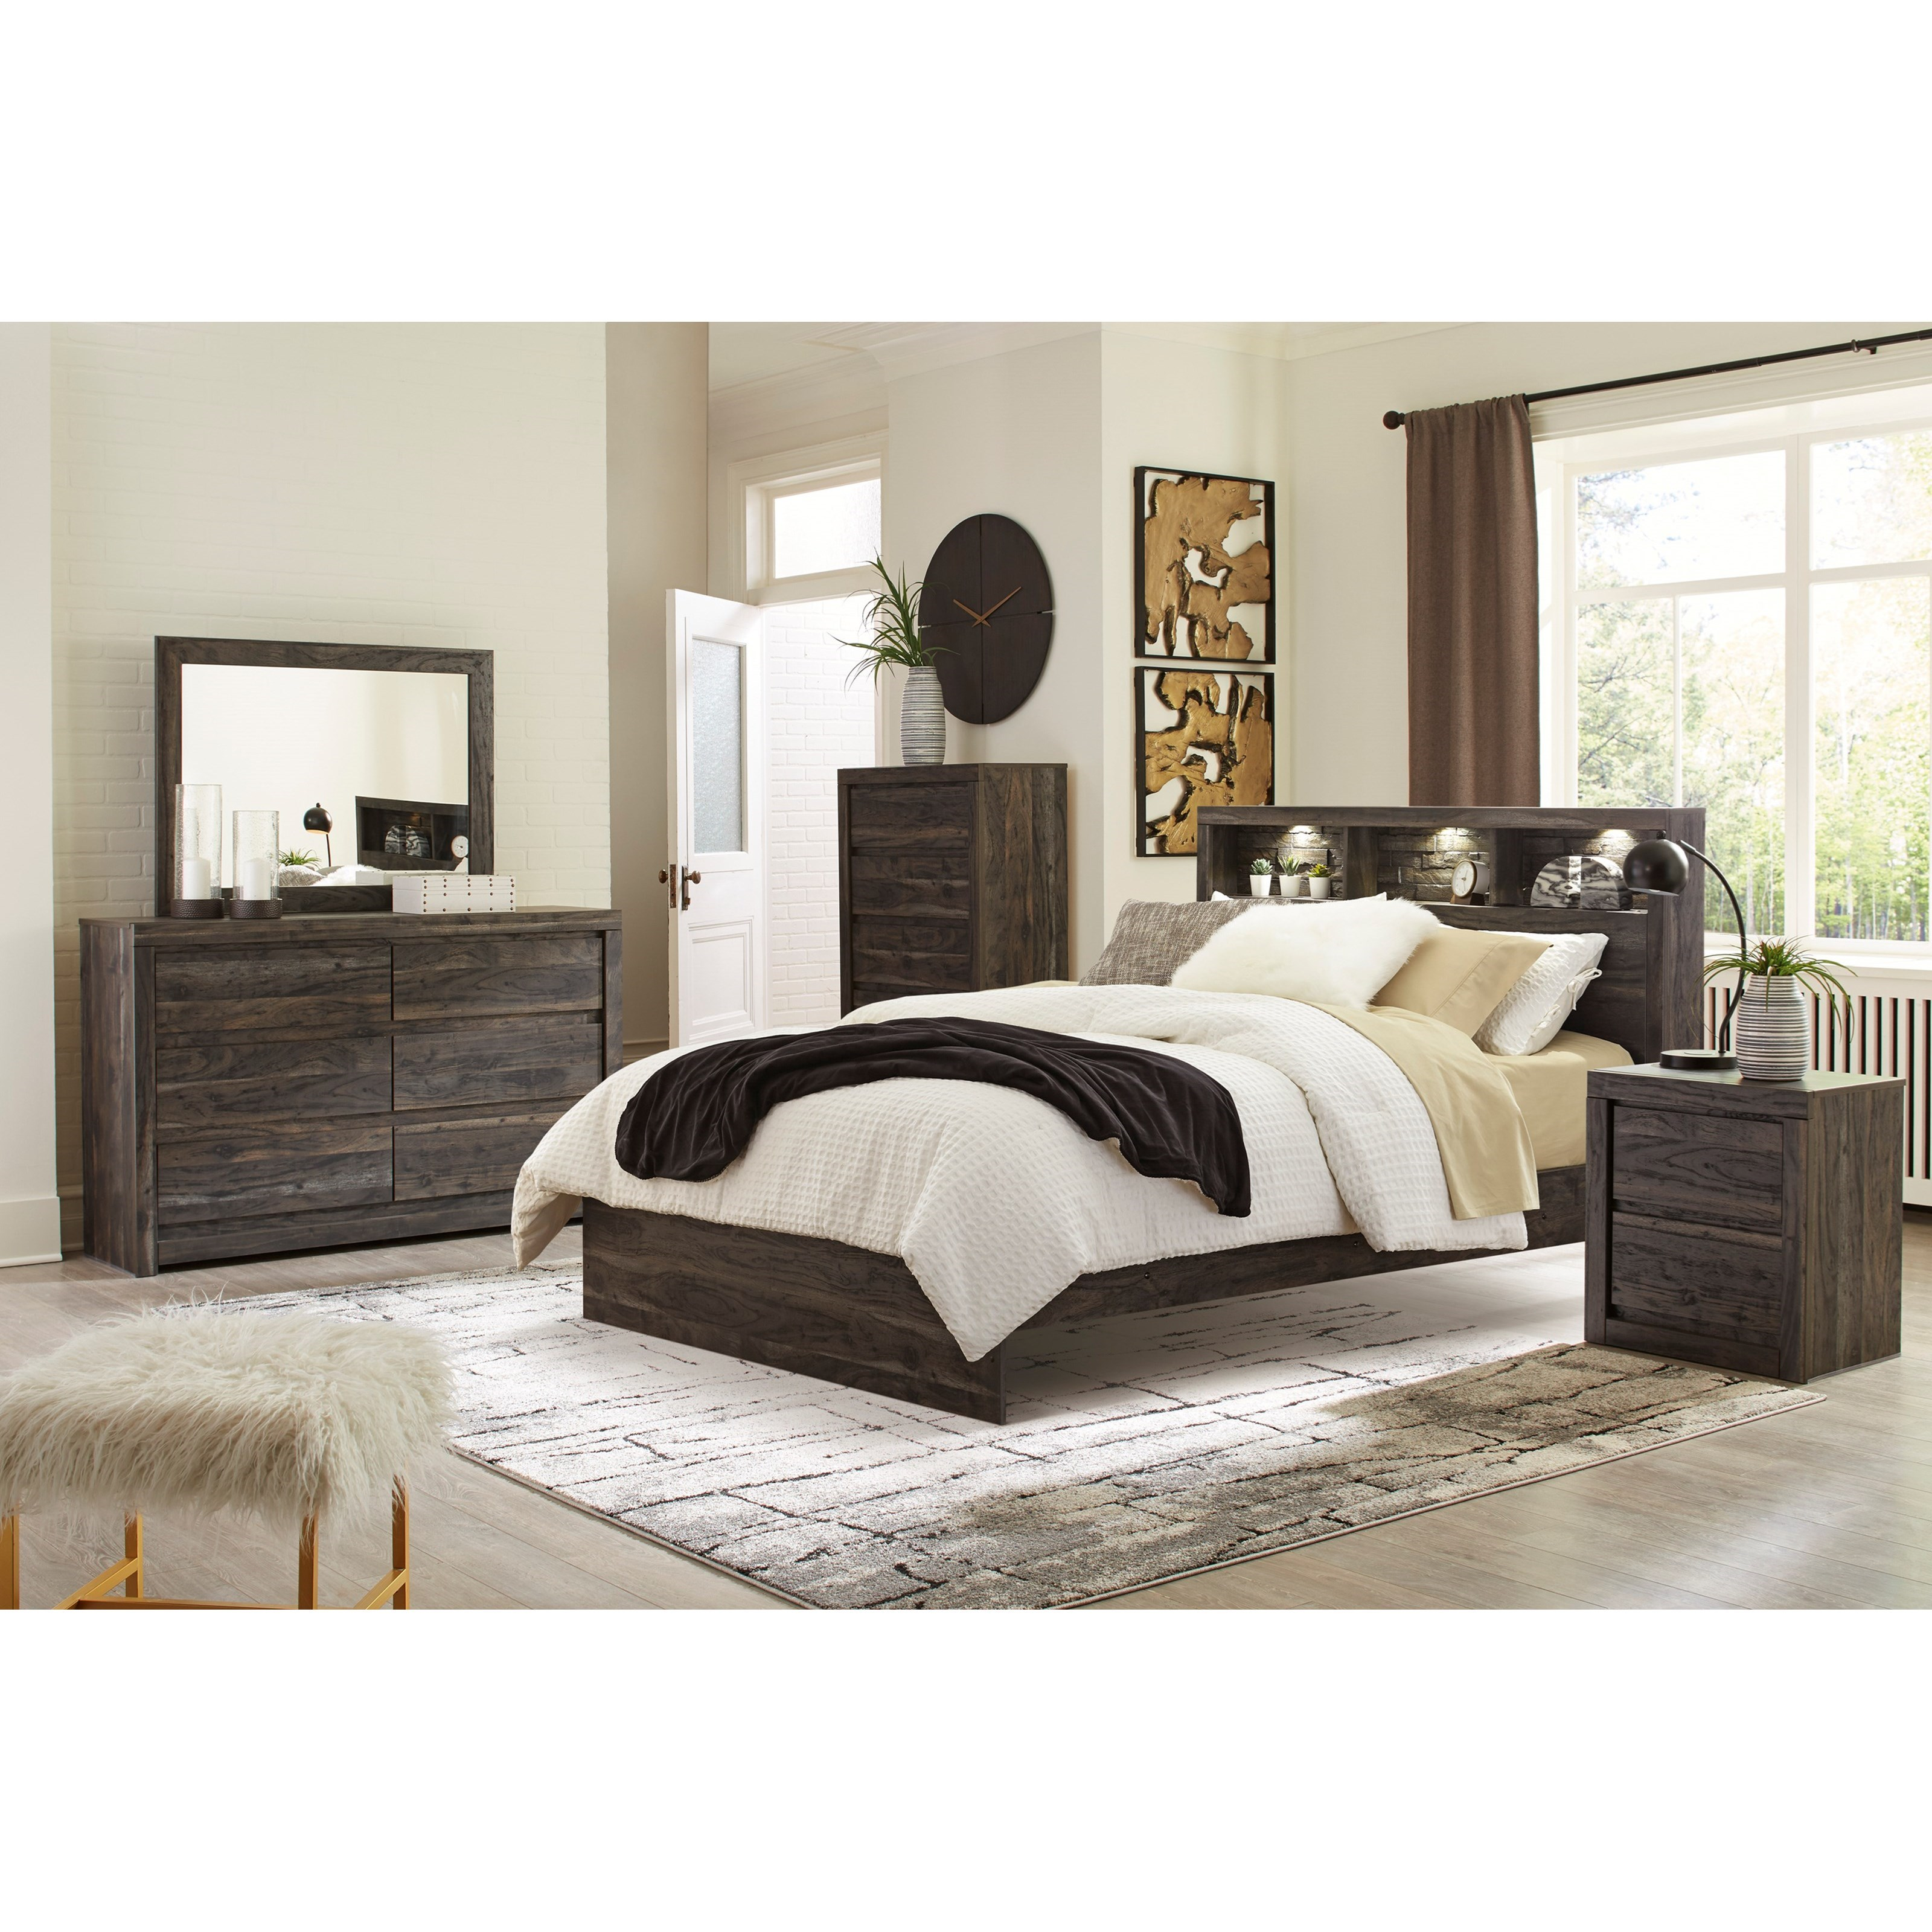 Vay Bay Queen Bedroom Group by Benchcraft at Walker's Furniture